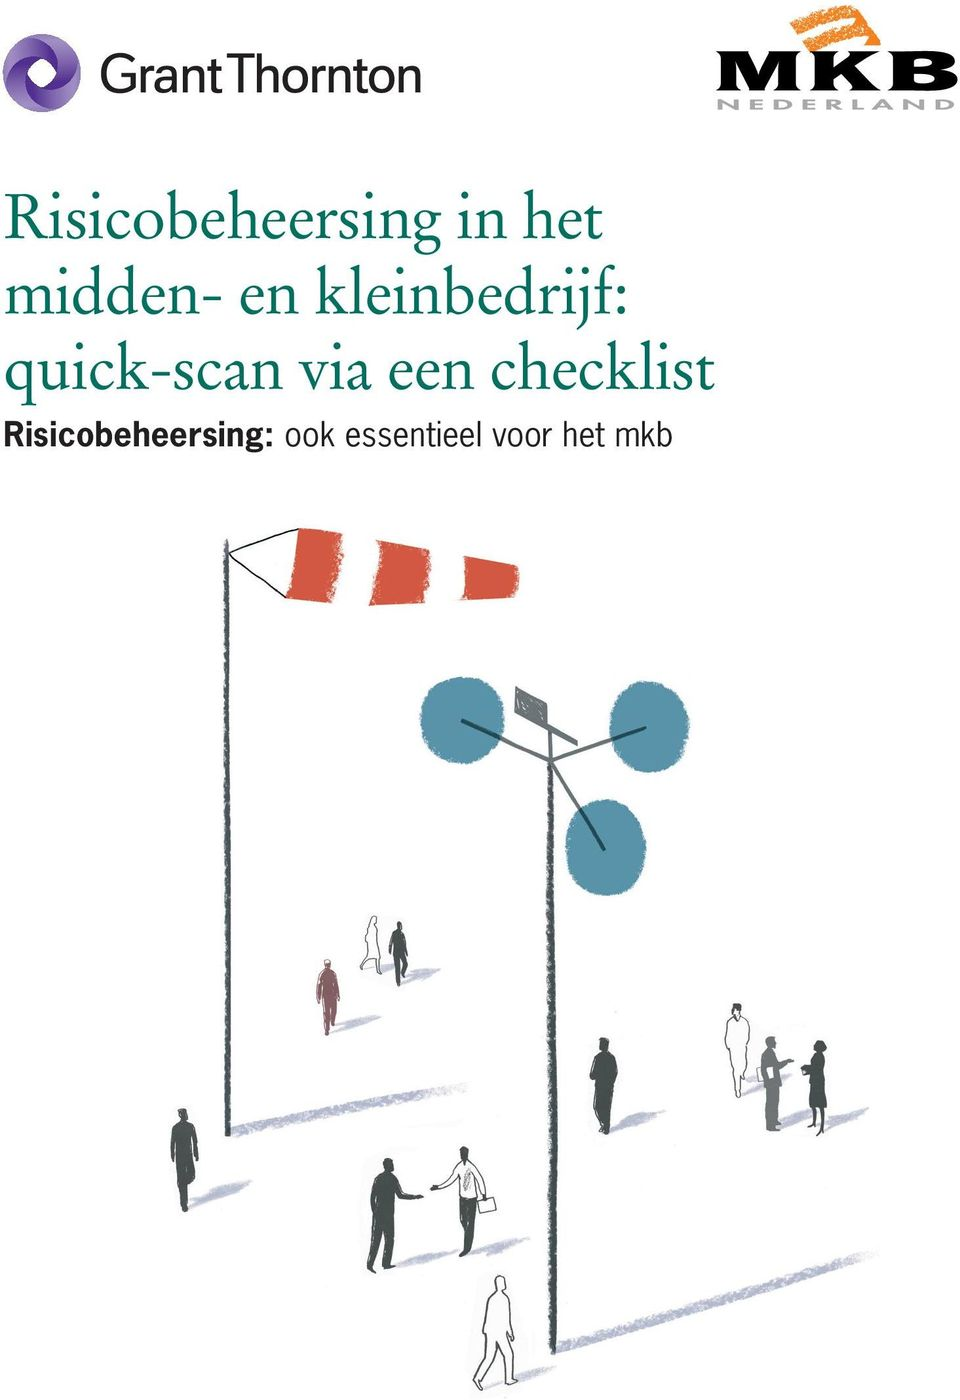 quick-scan via een checklist